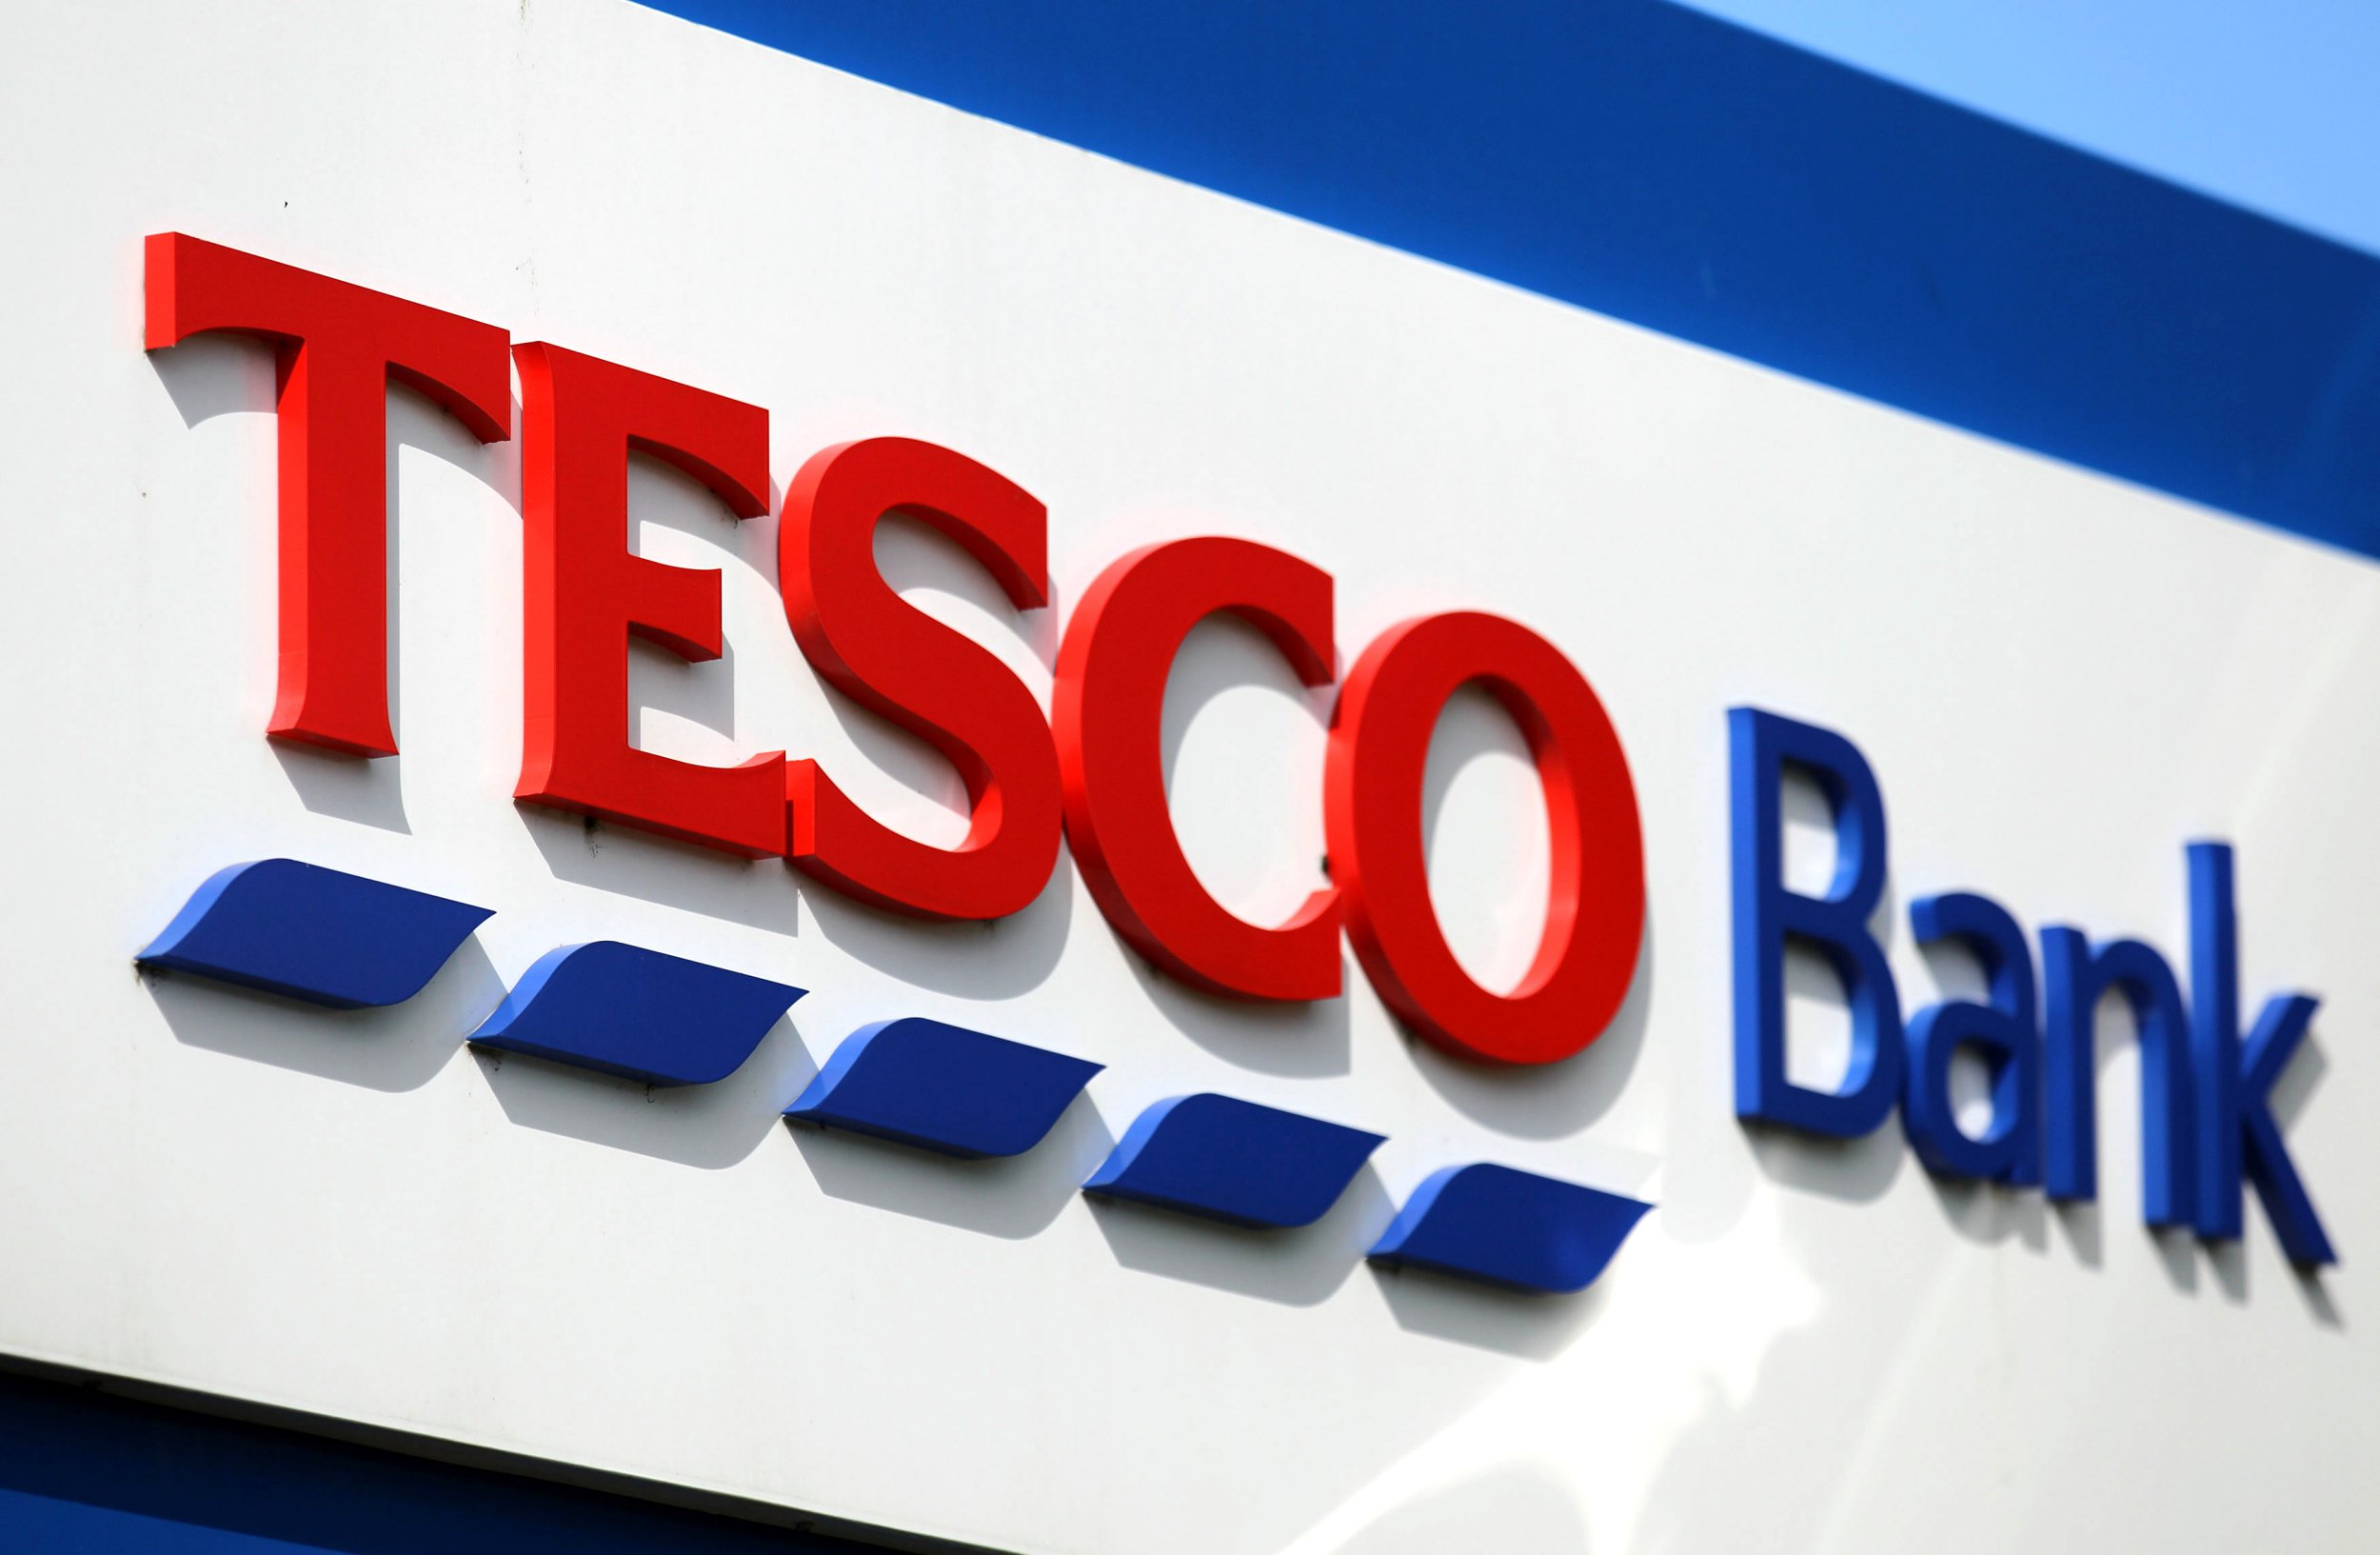 Tesco Bank fined £16.4m over cyber-attack that put customers at risk